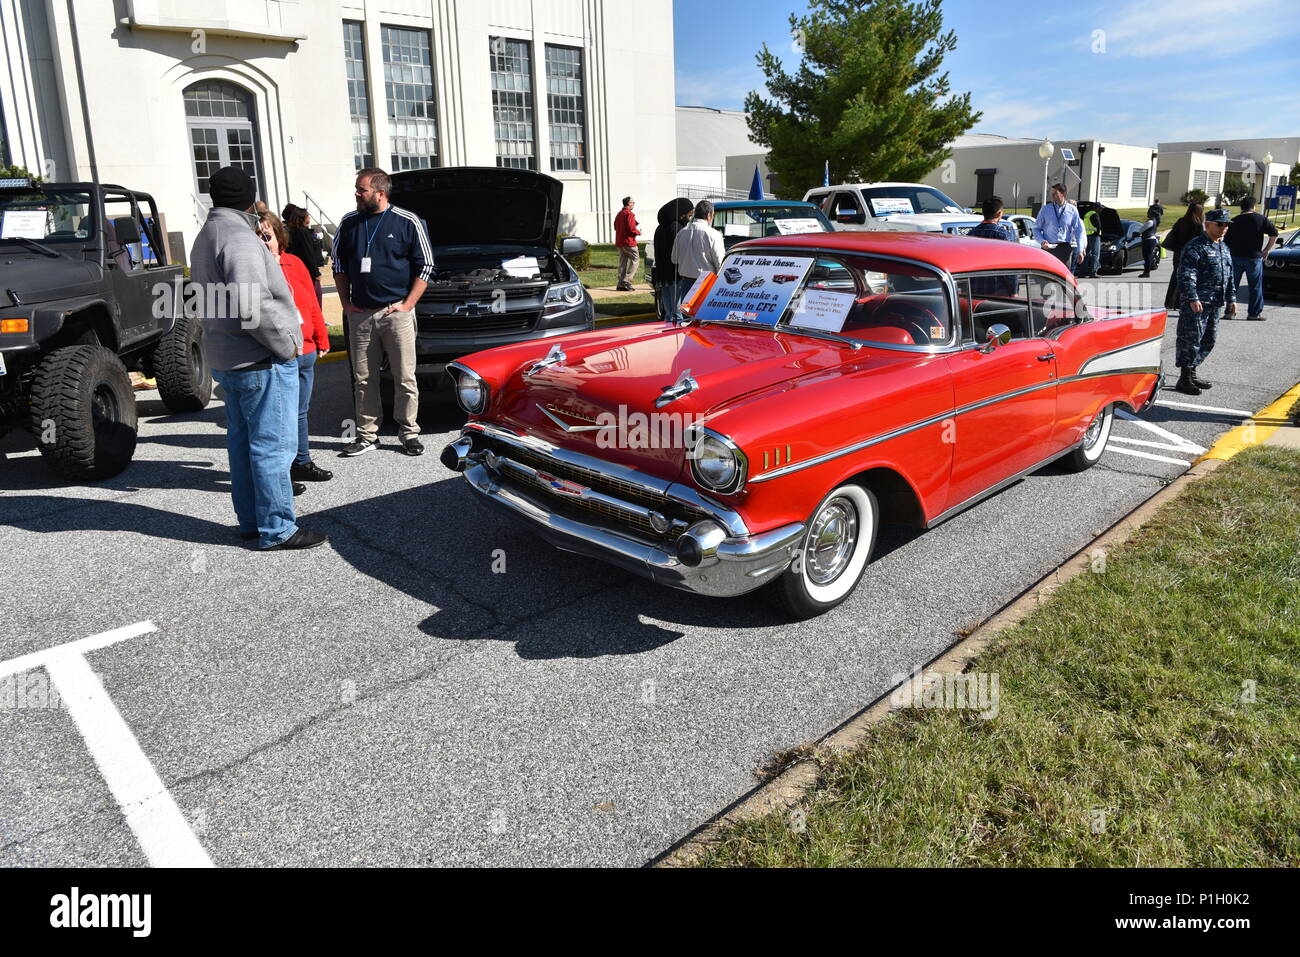 A 1957 Chevrolet Bel Air Belonging To Safety Engineer Thomas Martino